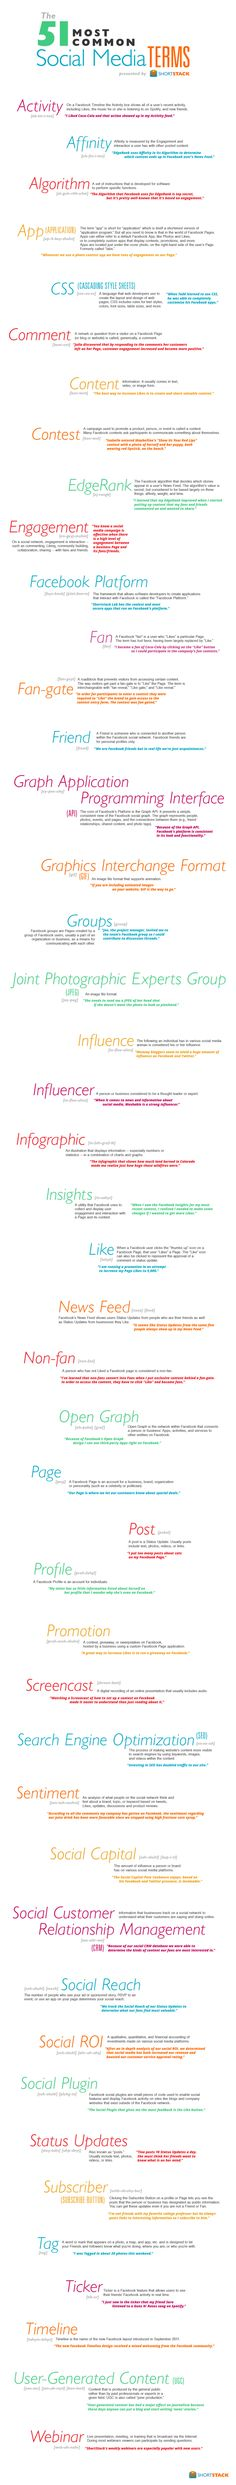 The 51 Most Common Social Media Terms